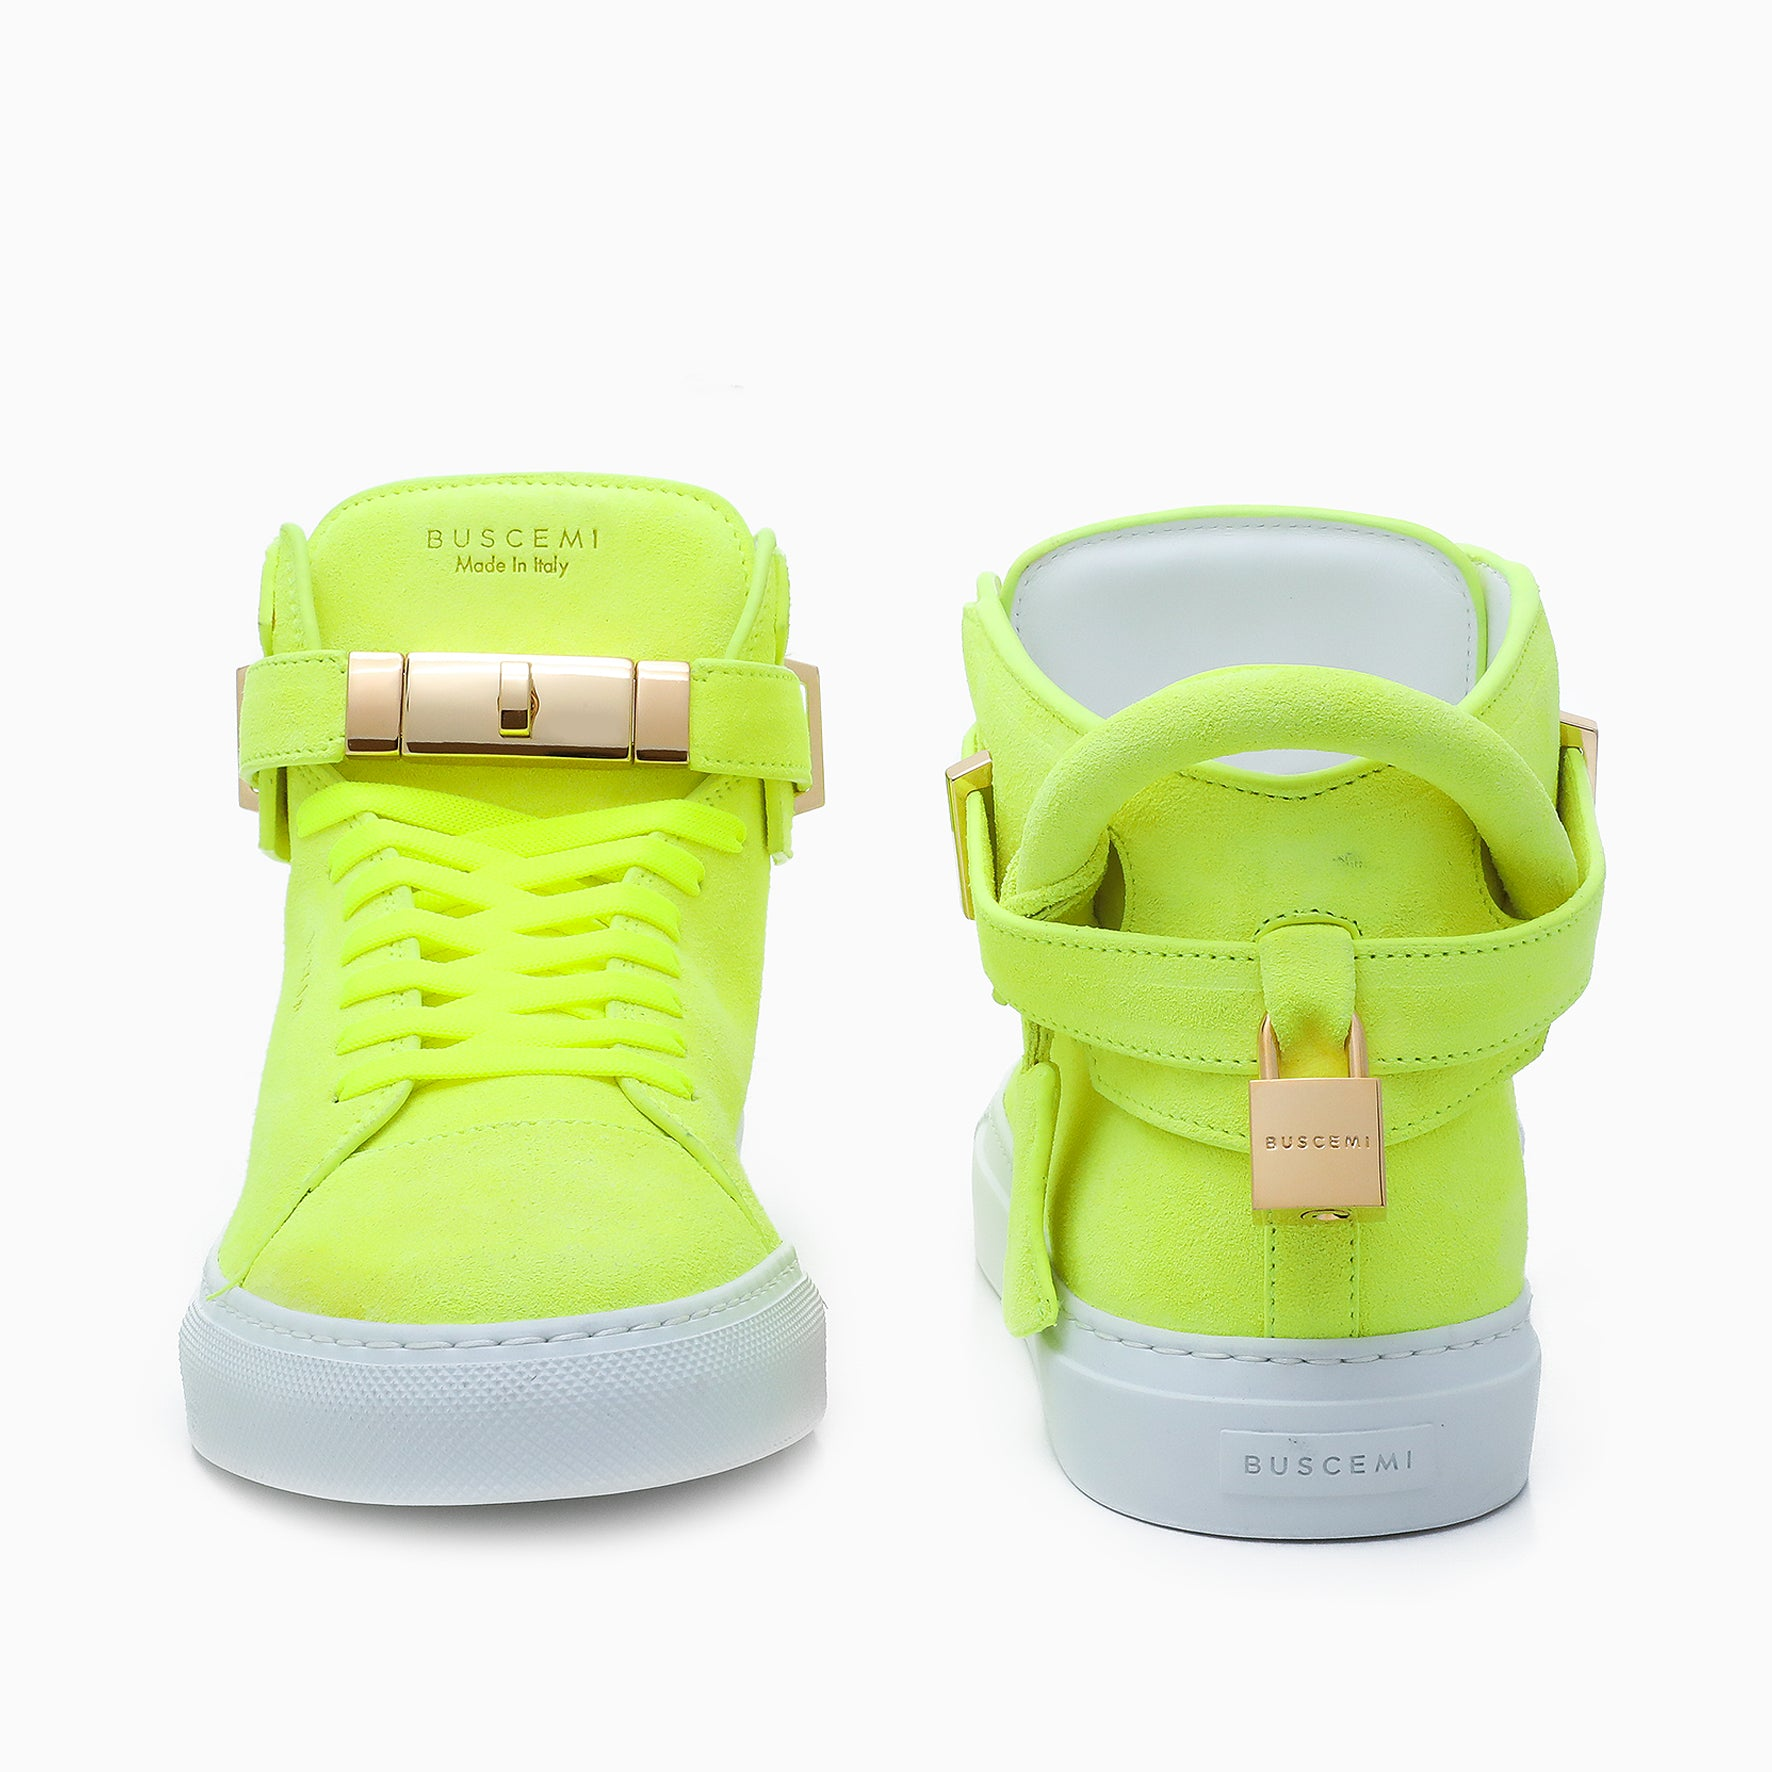 Italian made mens  high top yellow sneaker from Buscemi